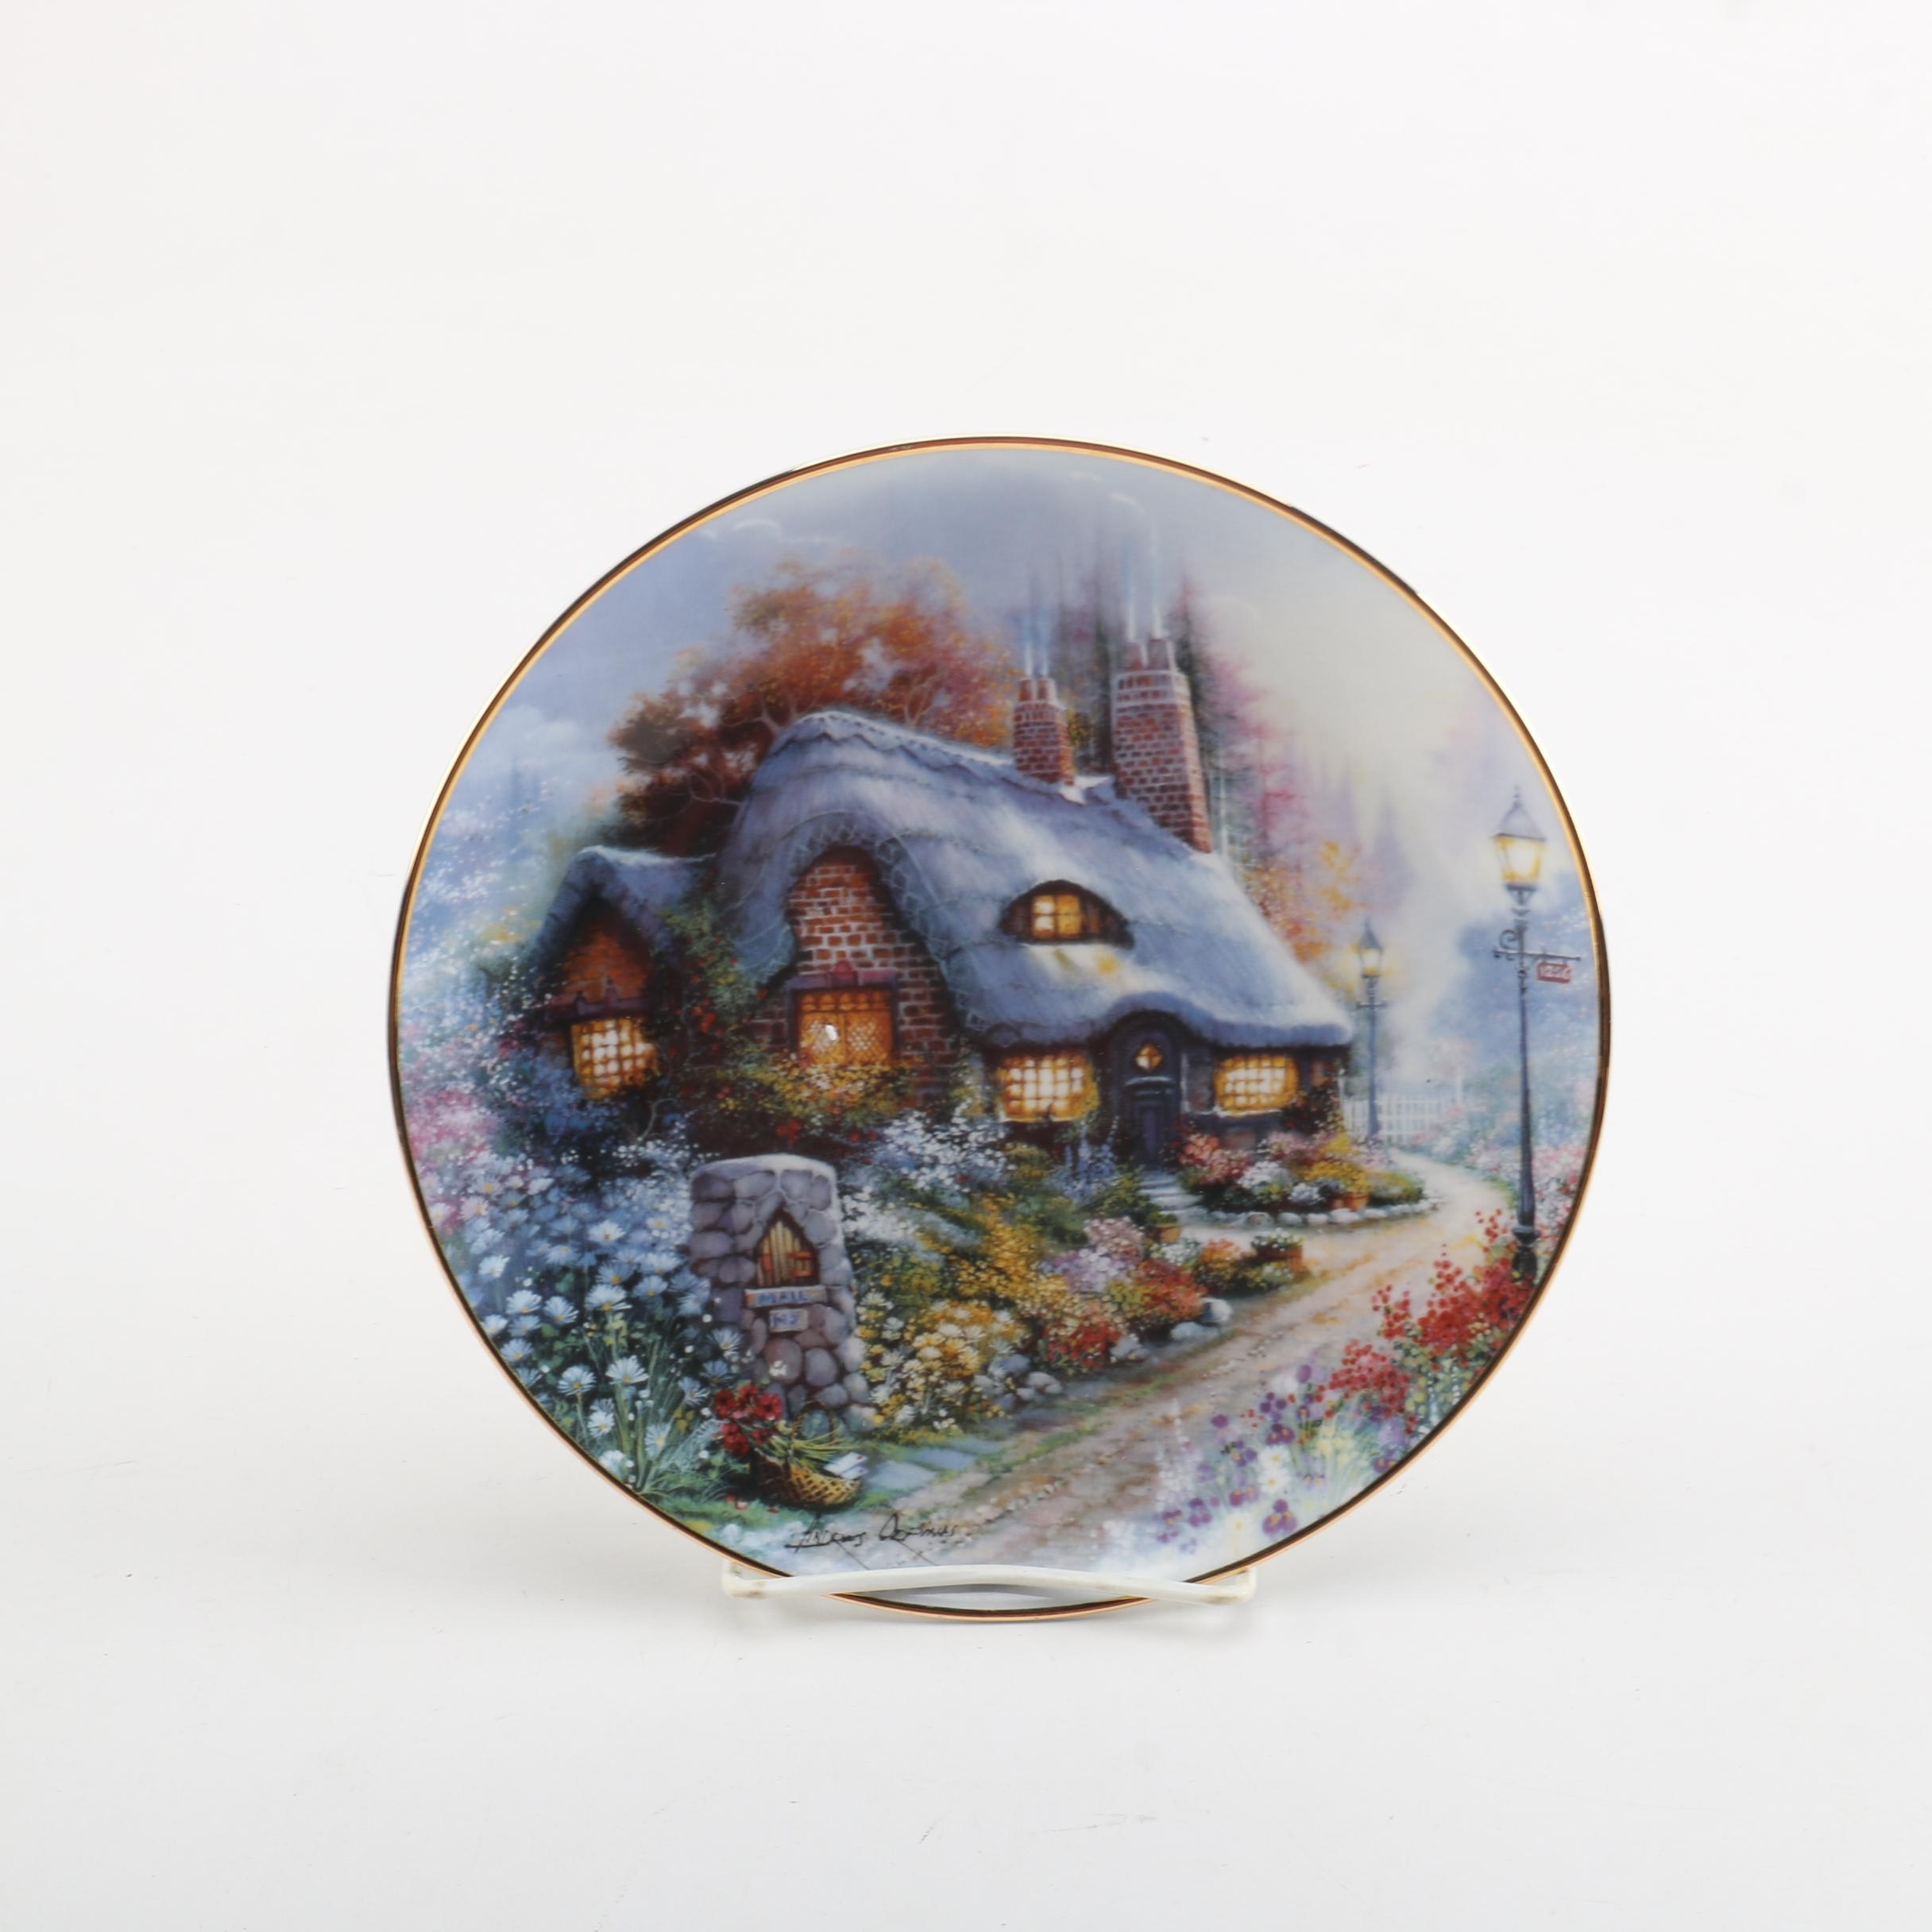 """Royal Doulton """"The Cottage on Daisy Lane"""" Commemorative Plate"""